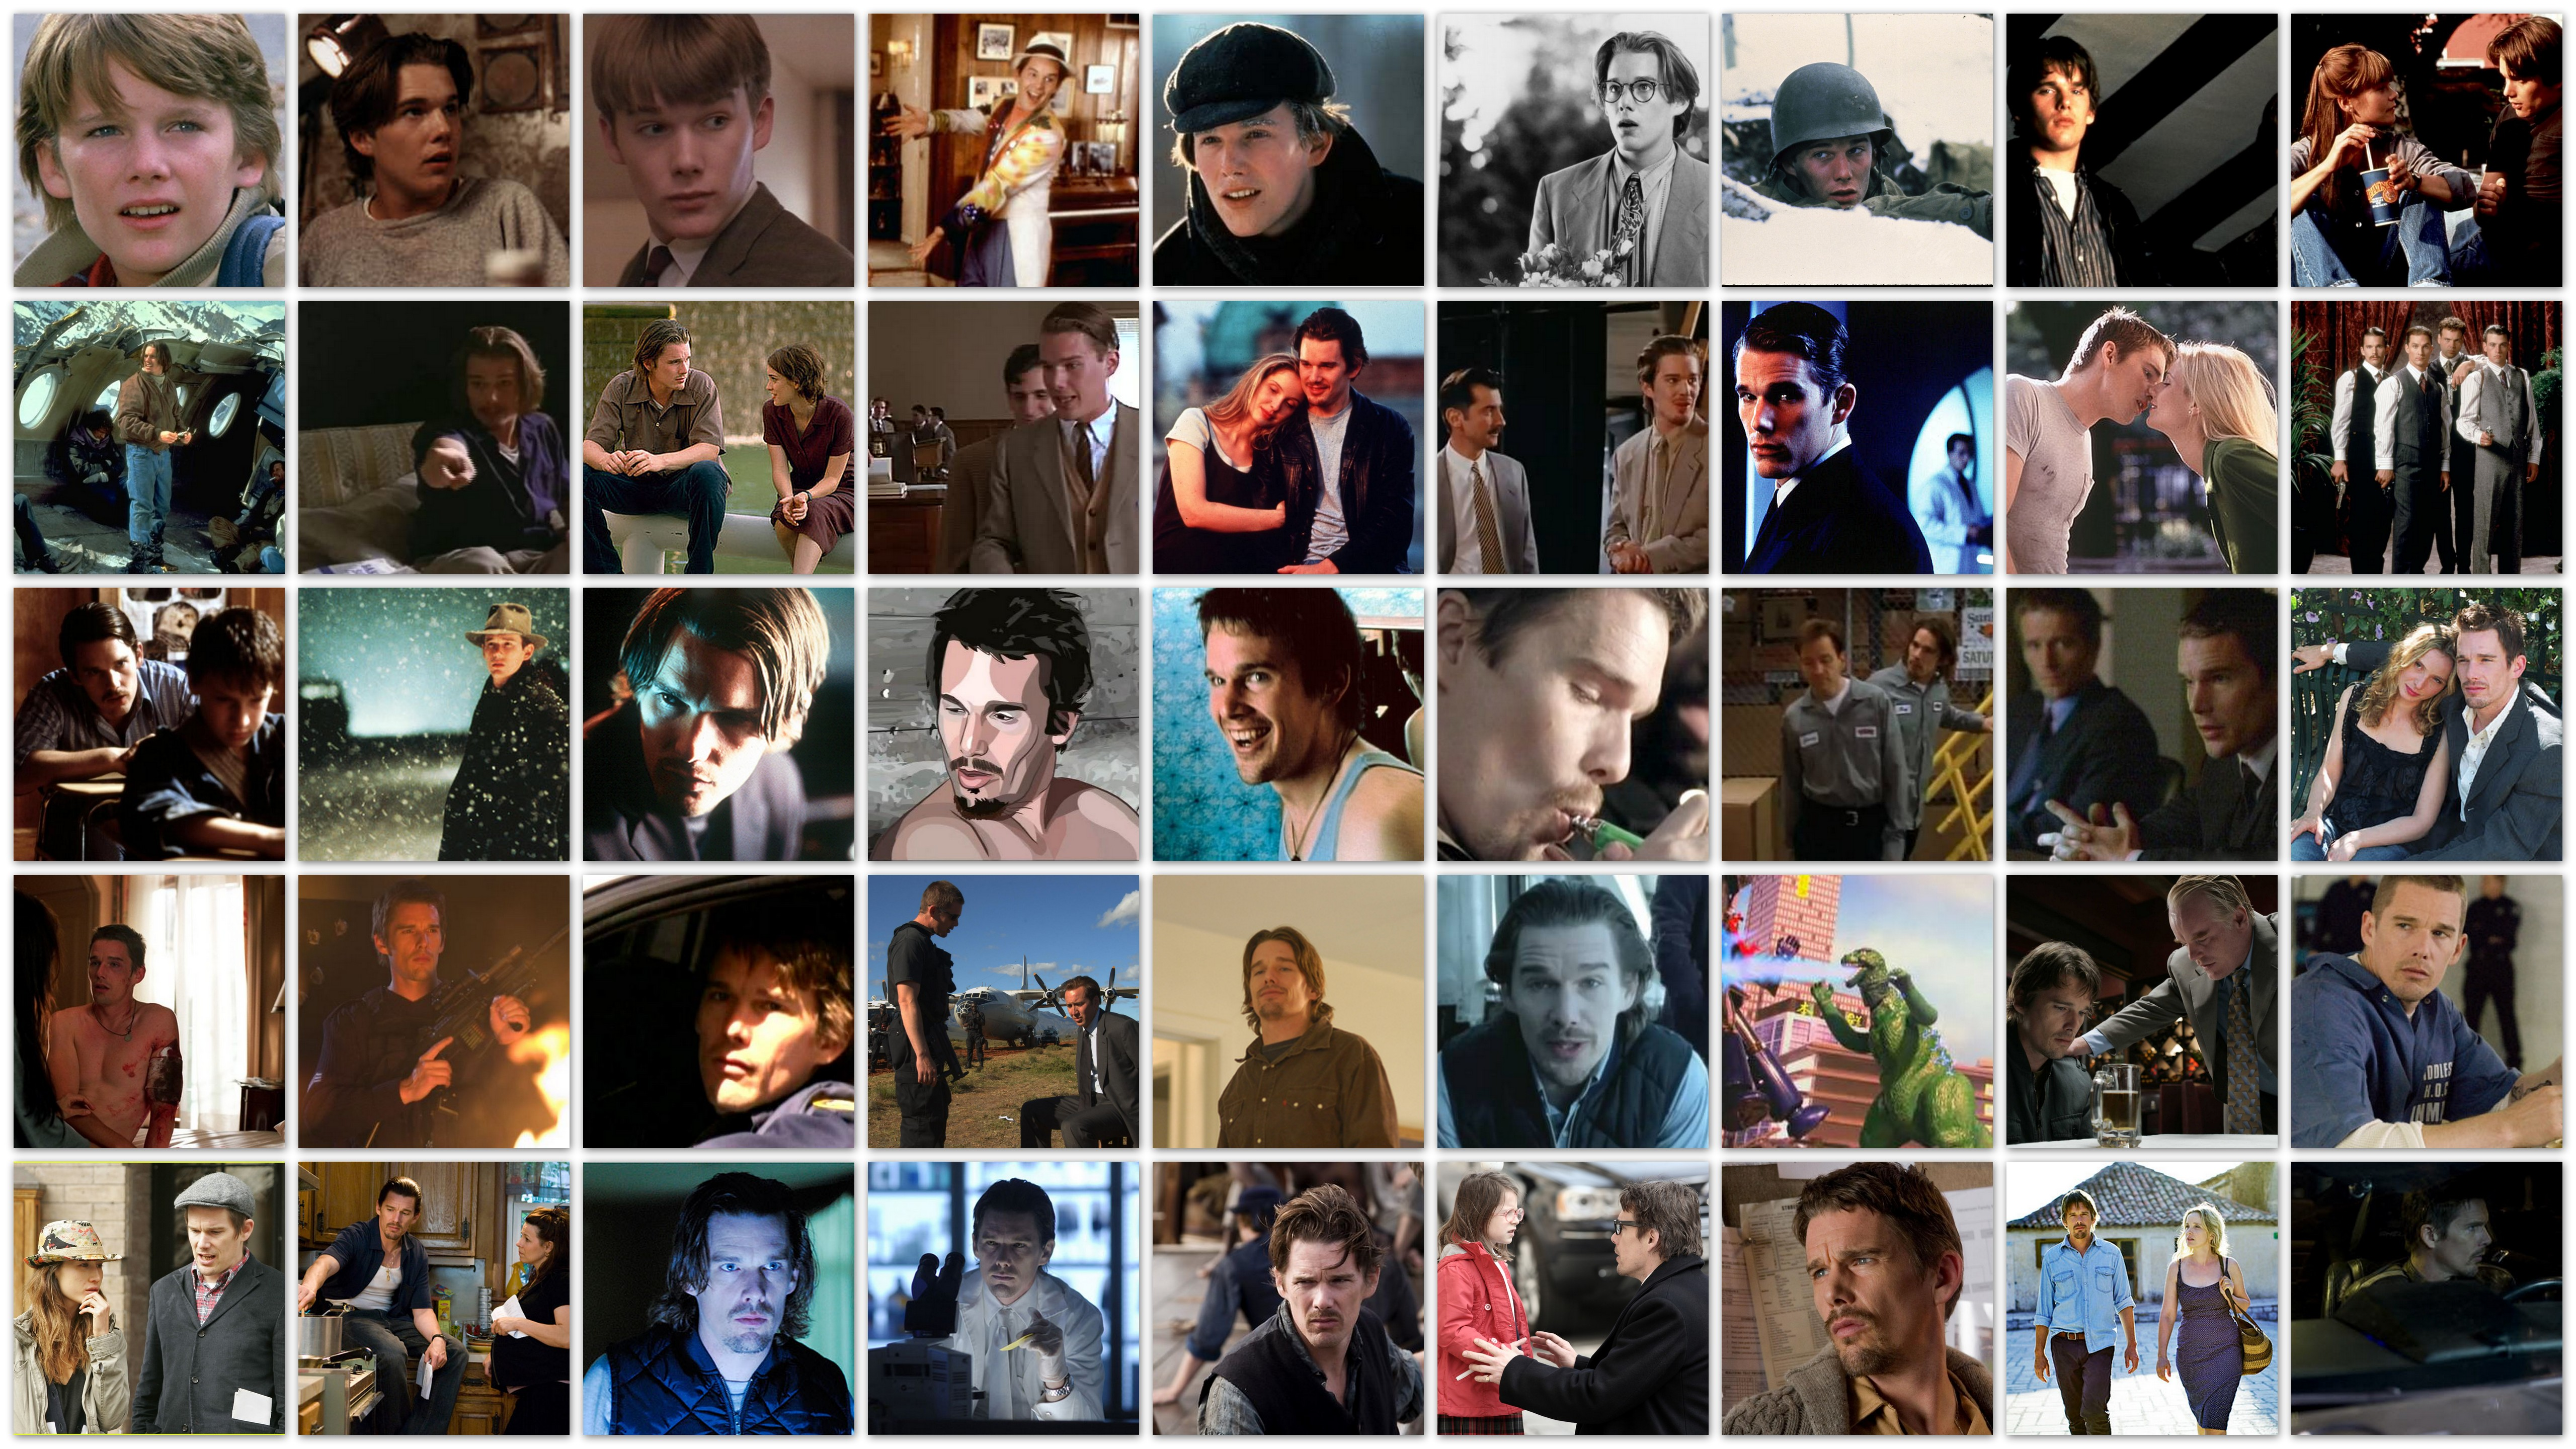 Overview of the roles of actor Ethan Hawke career movies